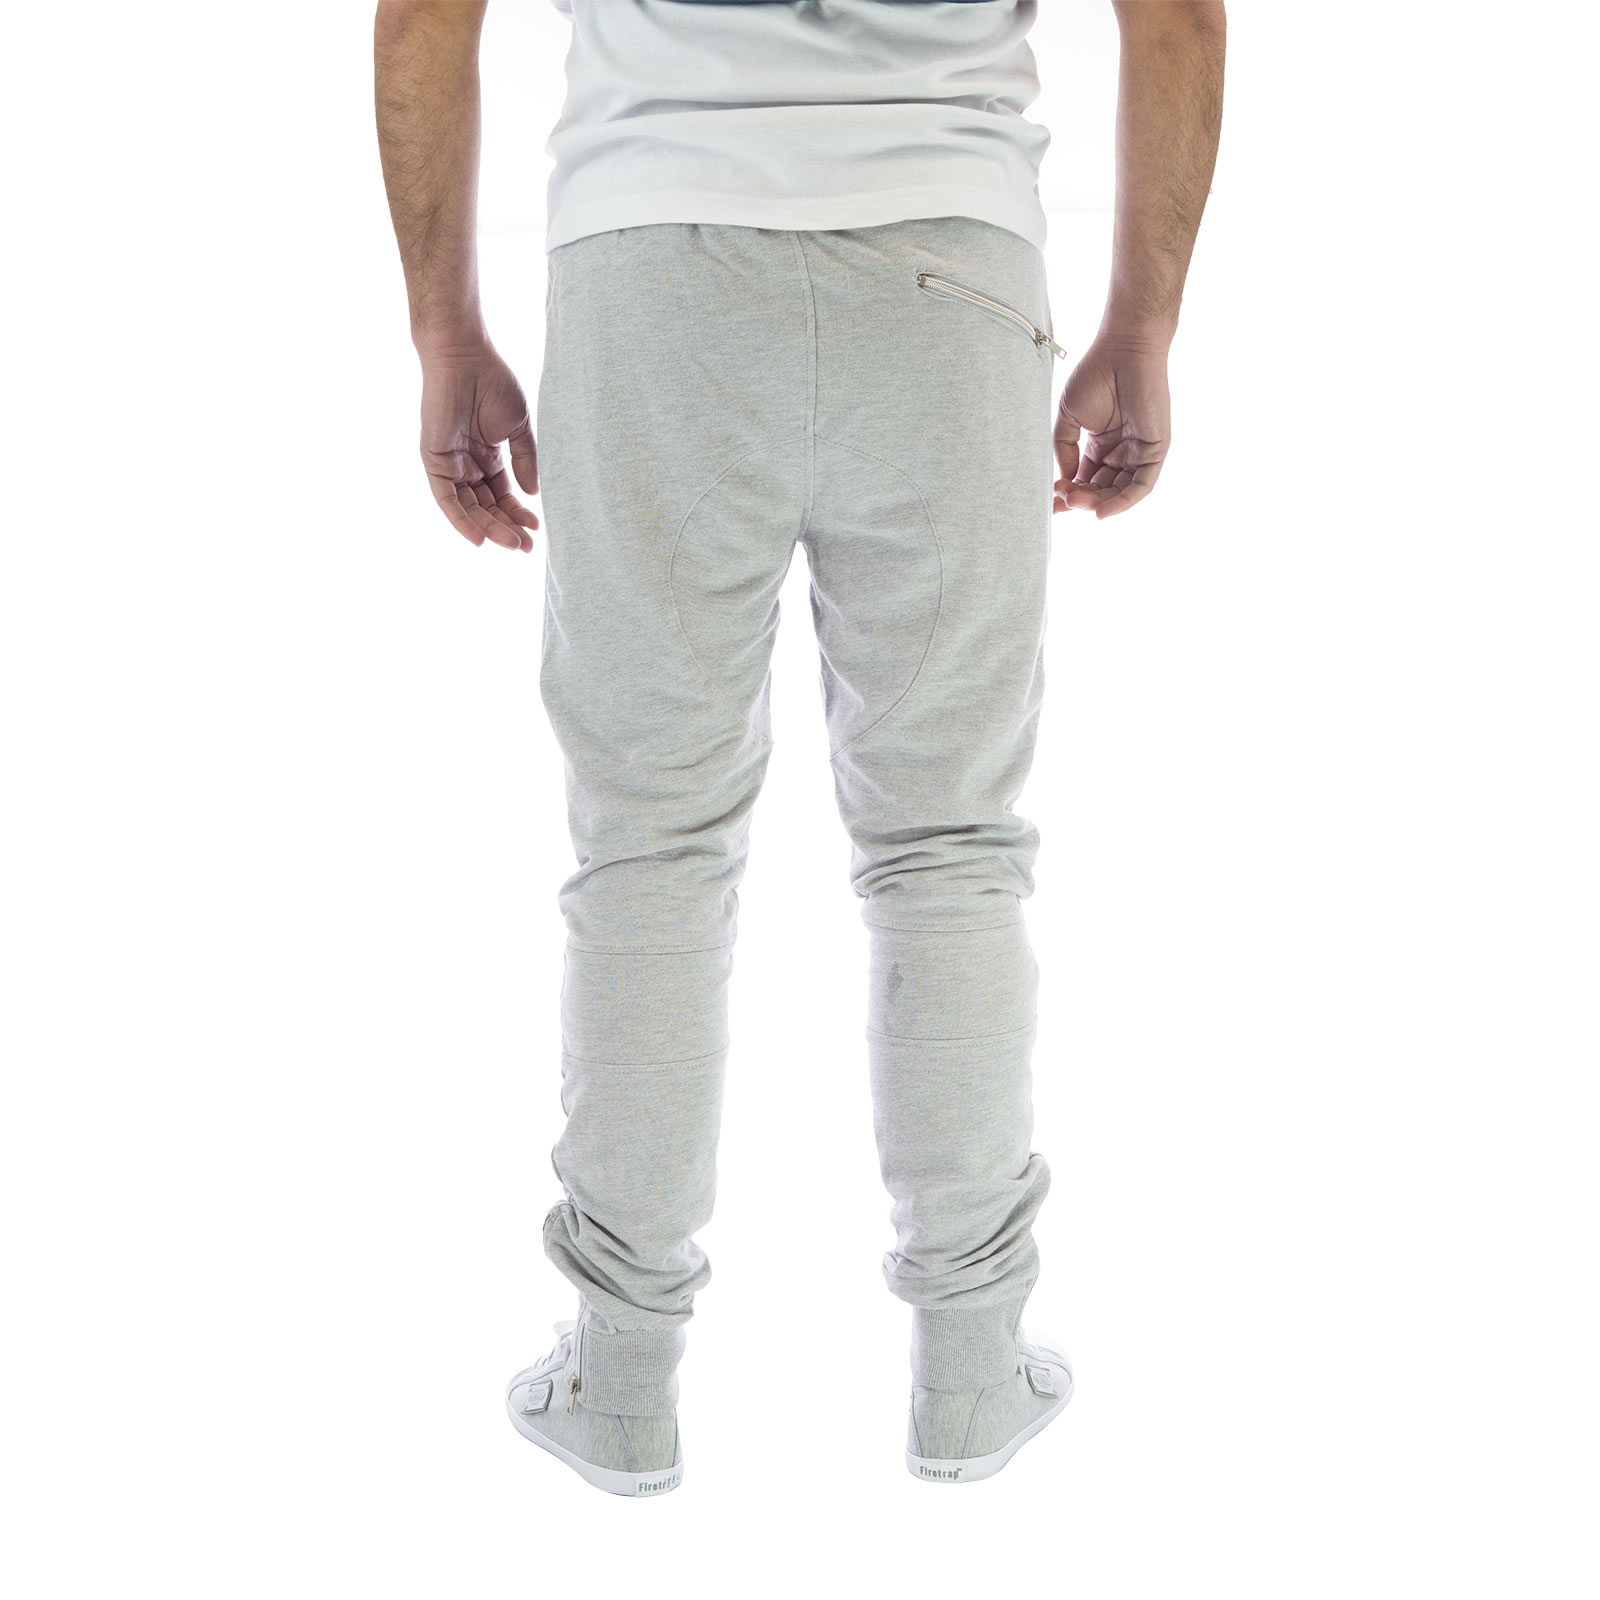 Find great deals on eBay for harem joggers. Shop with confidence. Skip to main content. eBay: Shop by category. Shop by category. Enter your search keyword Men Jogger Pants Urban Hip Hop Harem Casual Trousers Slim Fit Elastic Tracksuit. New (Other) $ Buy It Now. Free Shipping.